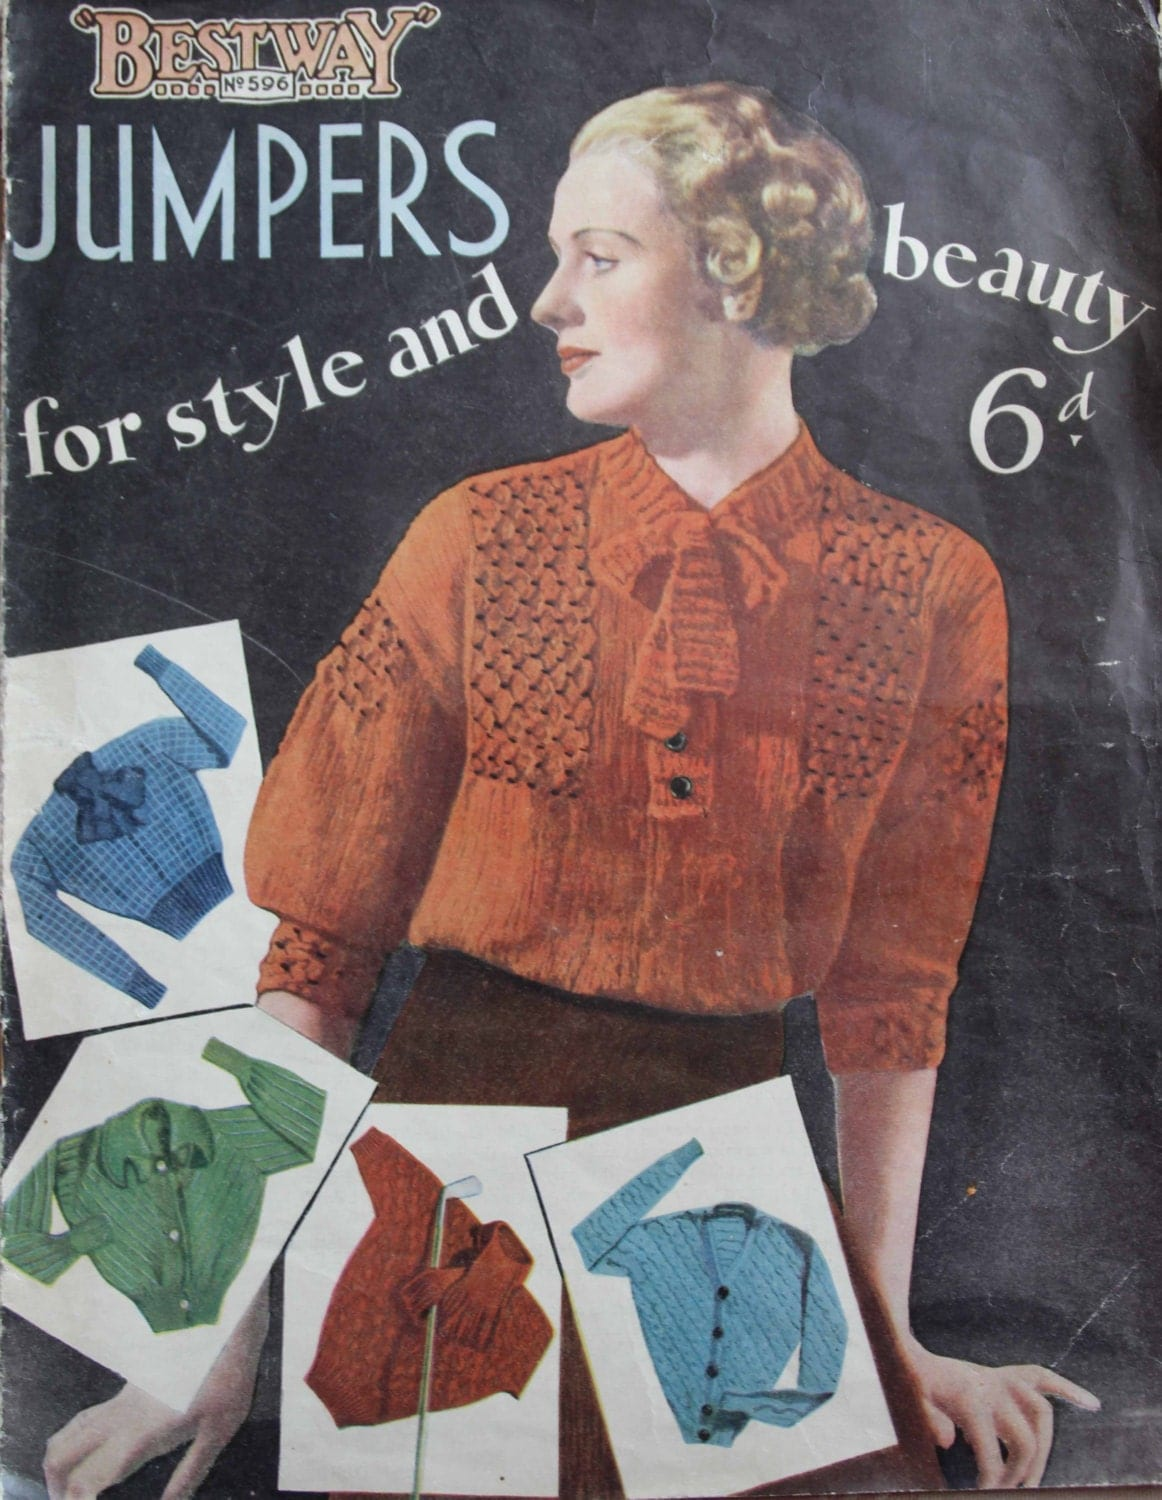 1930 39 S Bestway Jumpers For Style And Beauty Pdf Vintage Knitting Pattern 1930 39 S Jumper